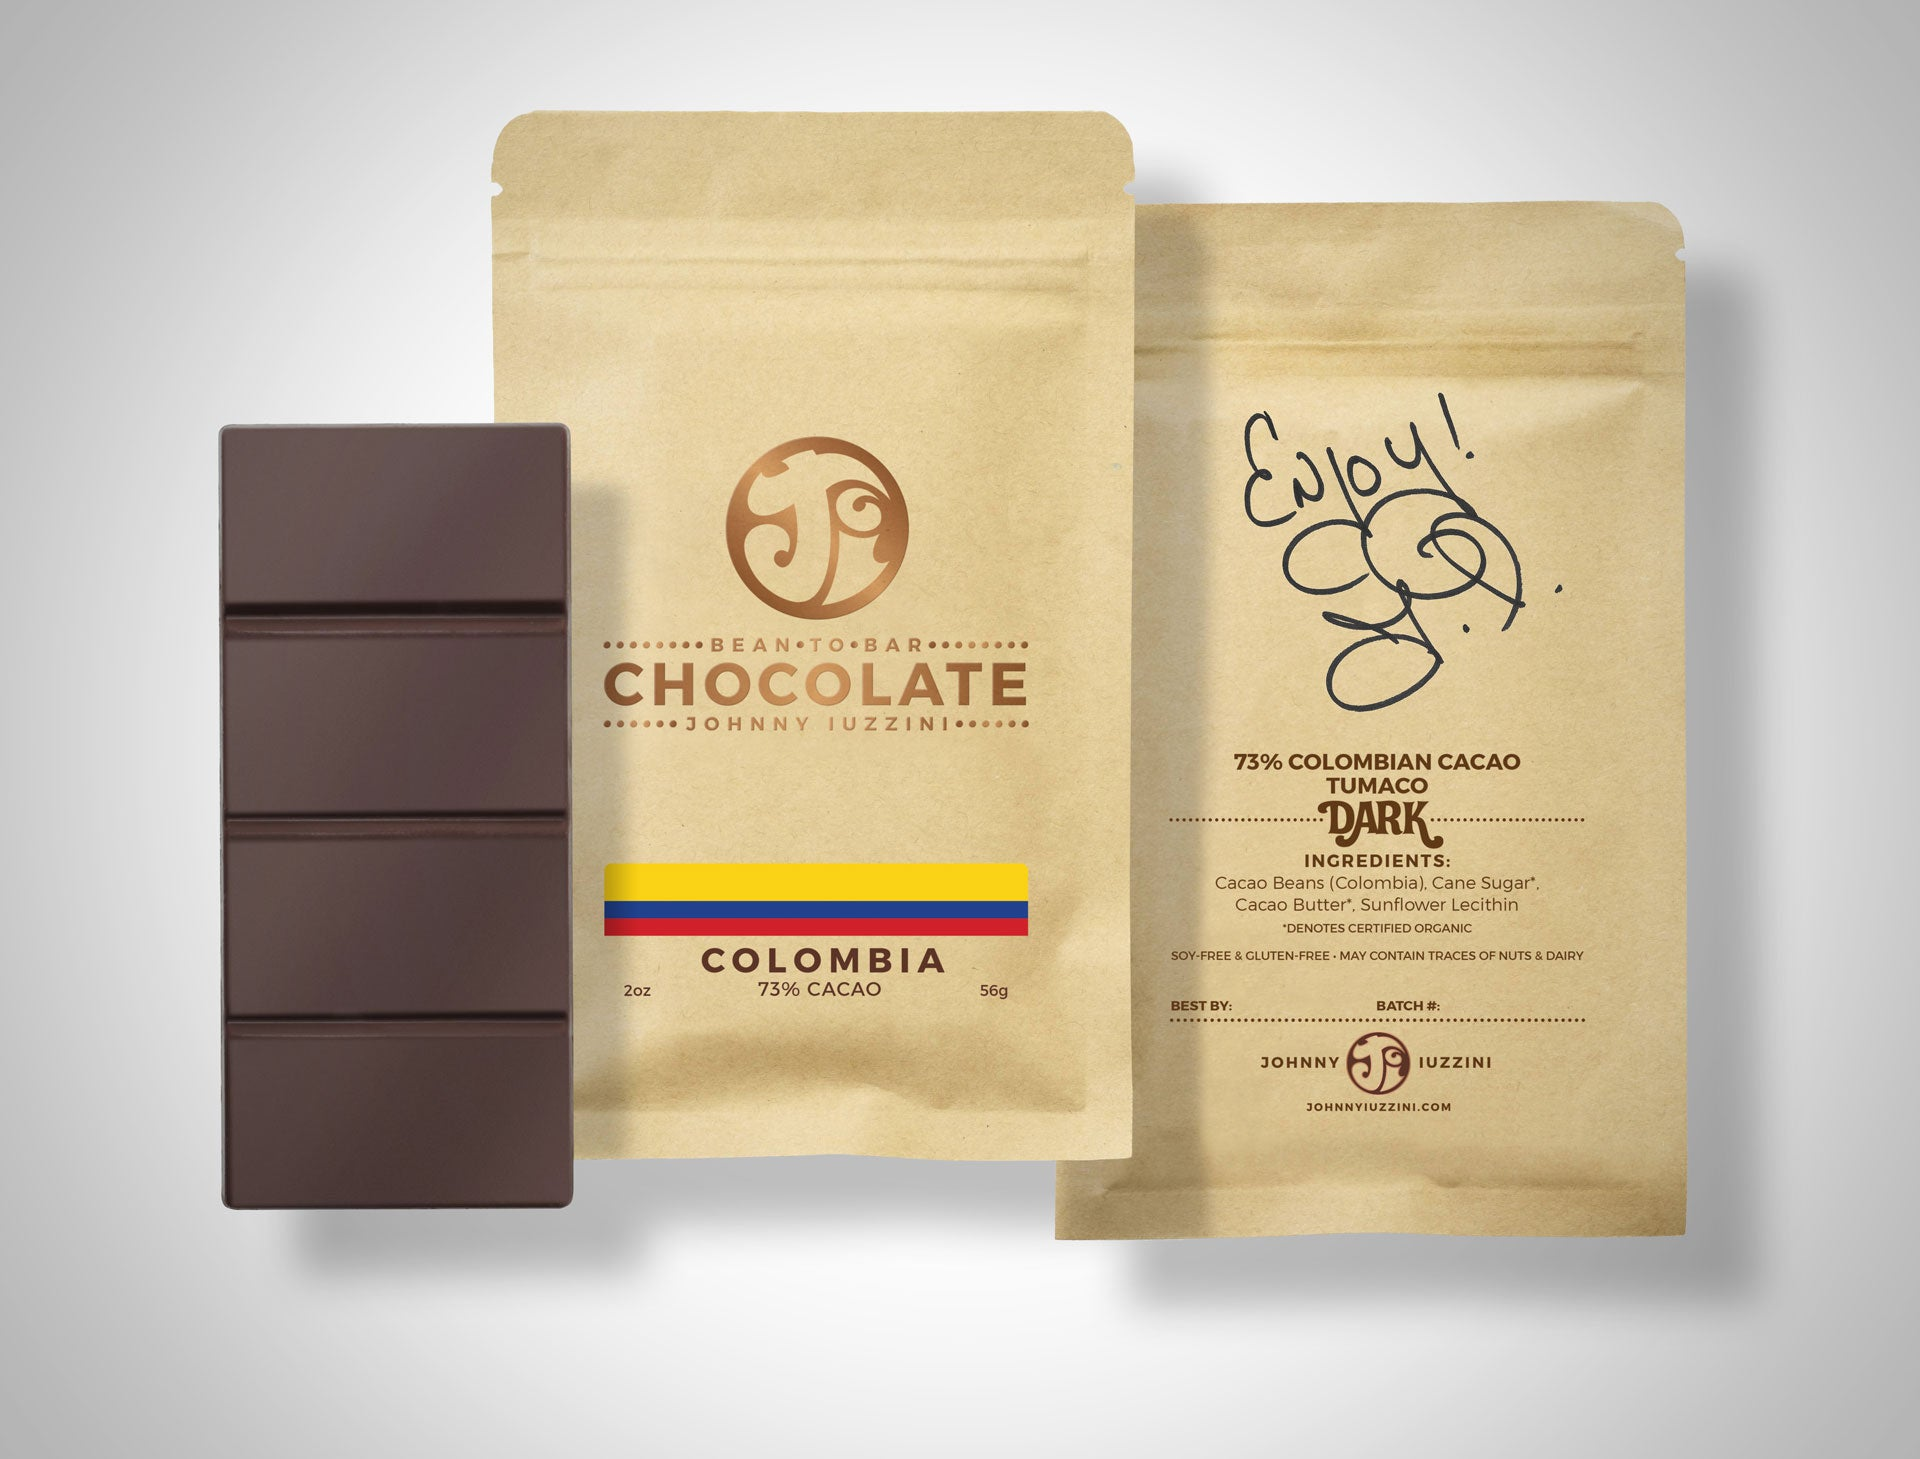 Colombia, Tumaco, 73% Cacao Dark Chocolate